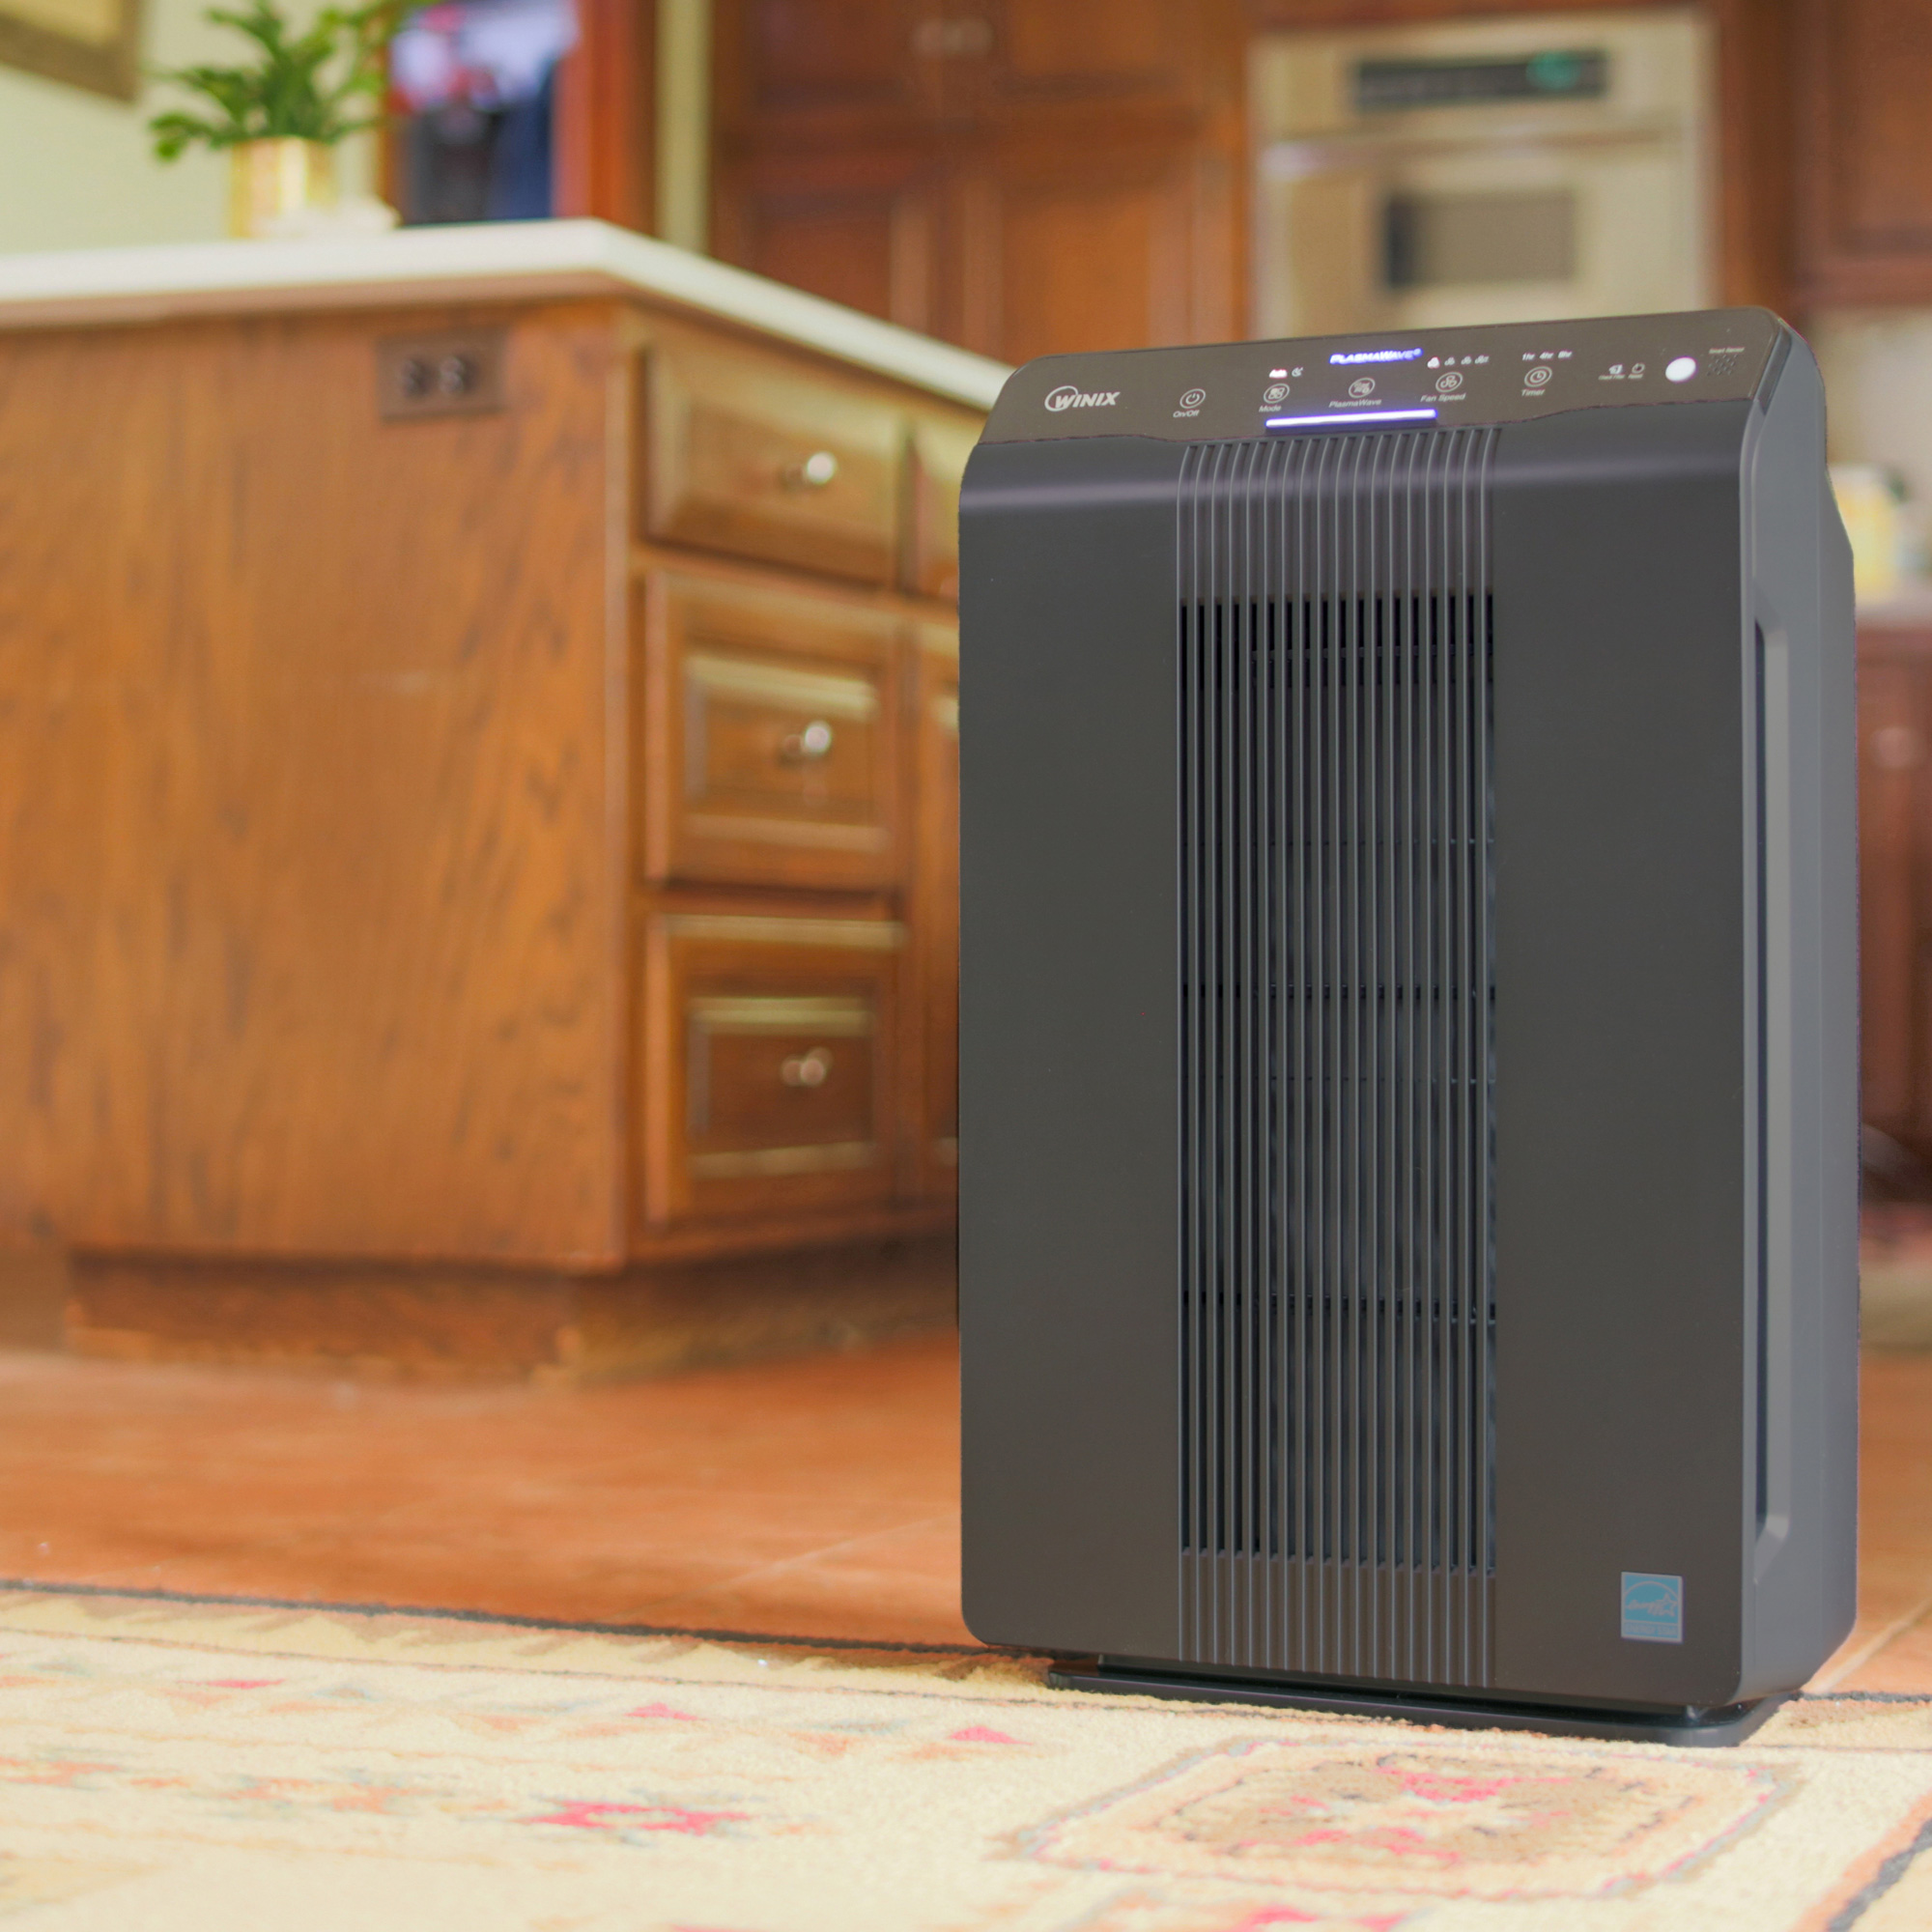 Best Air Purifier for Odor - Winix in Kitchen